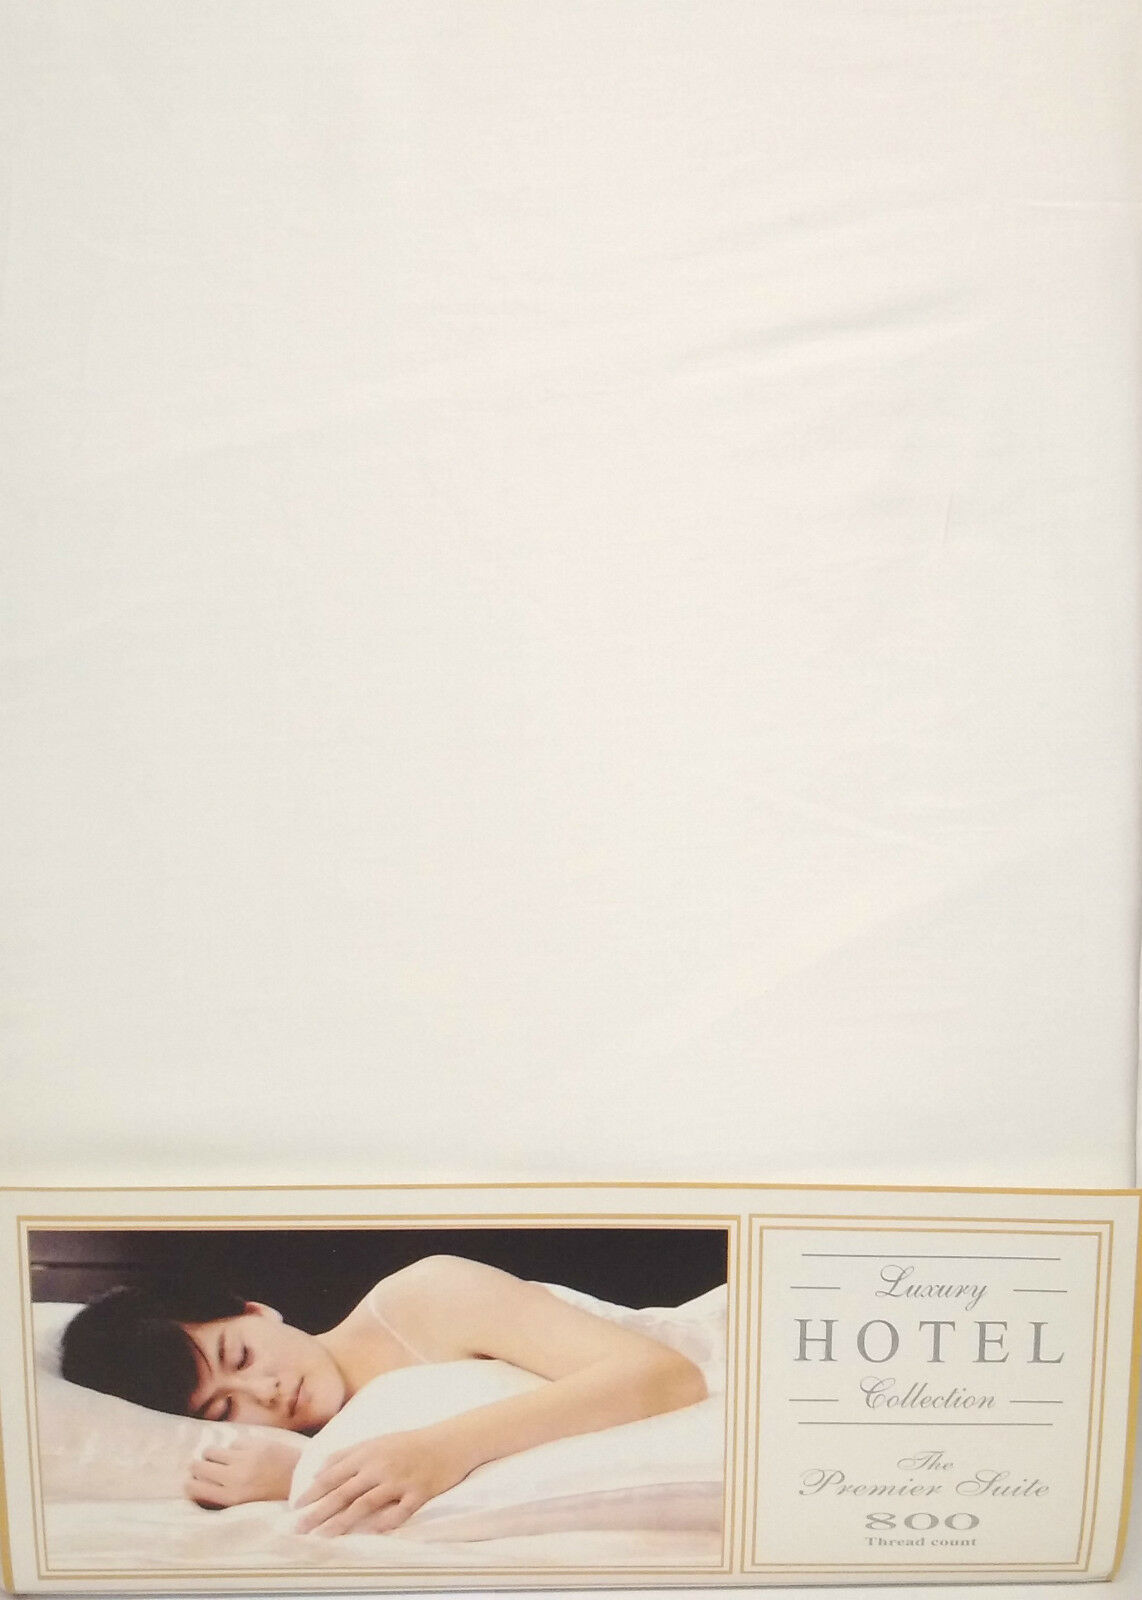 800 THREAD COUNT SUPER KING FITTED SHEET WHITE 13  DEEP BOX LUXURY 100% COTTON